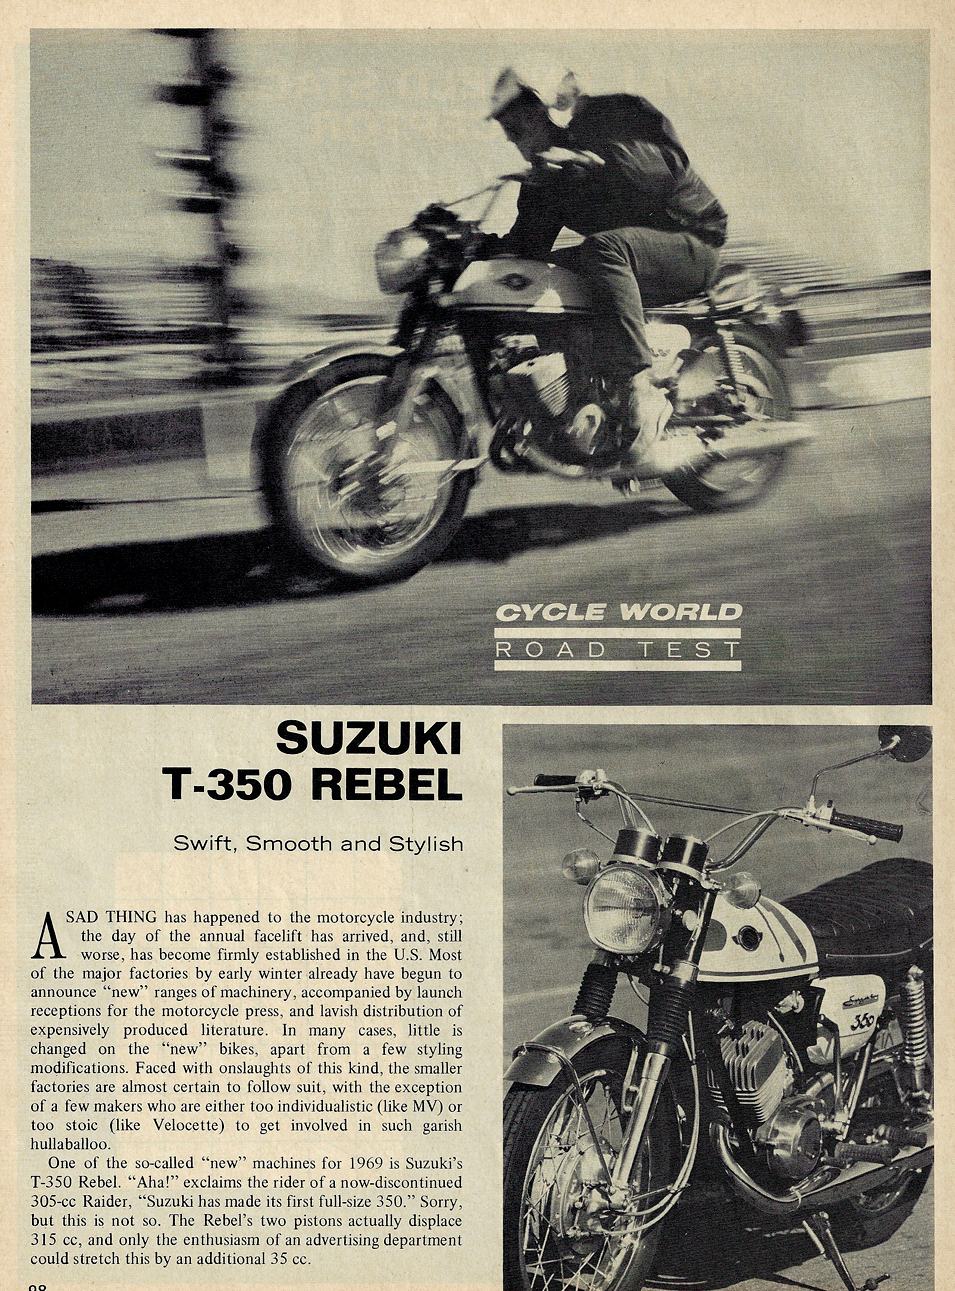 1969 Suzuki T350 Rebel road test 1.jpg